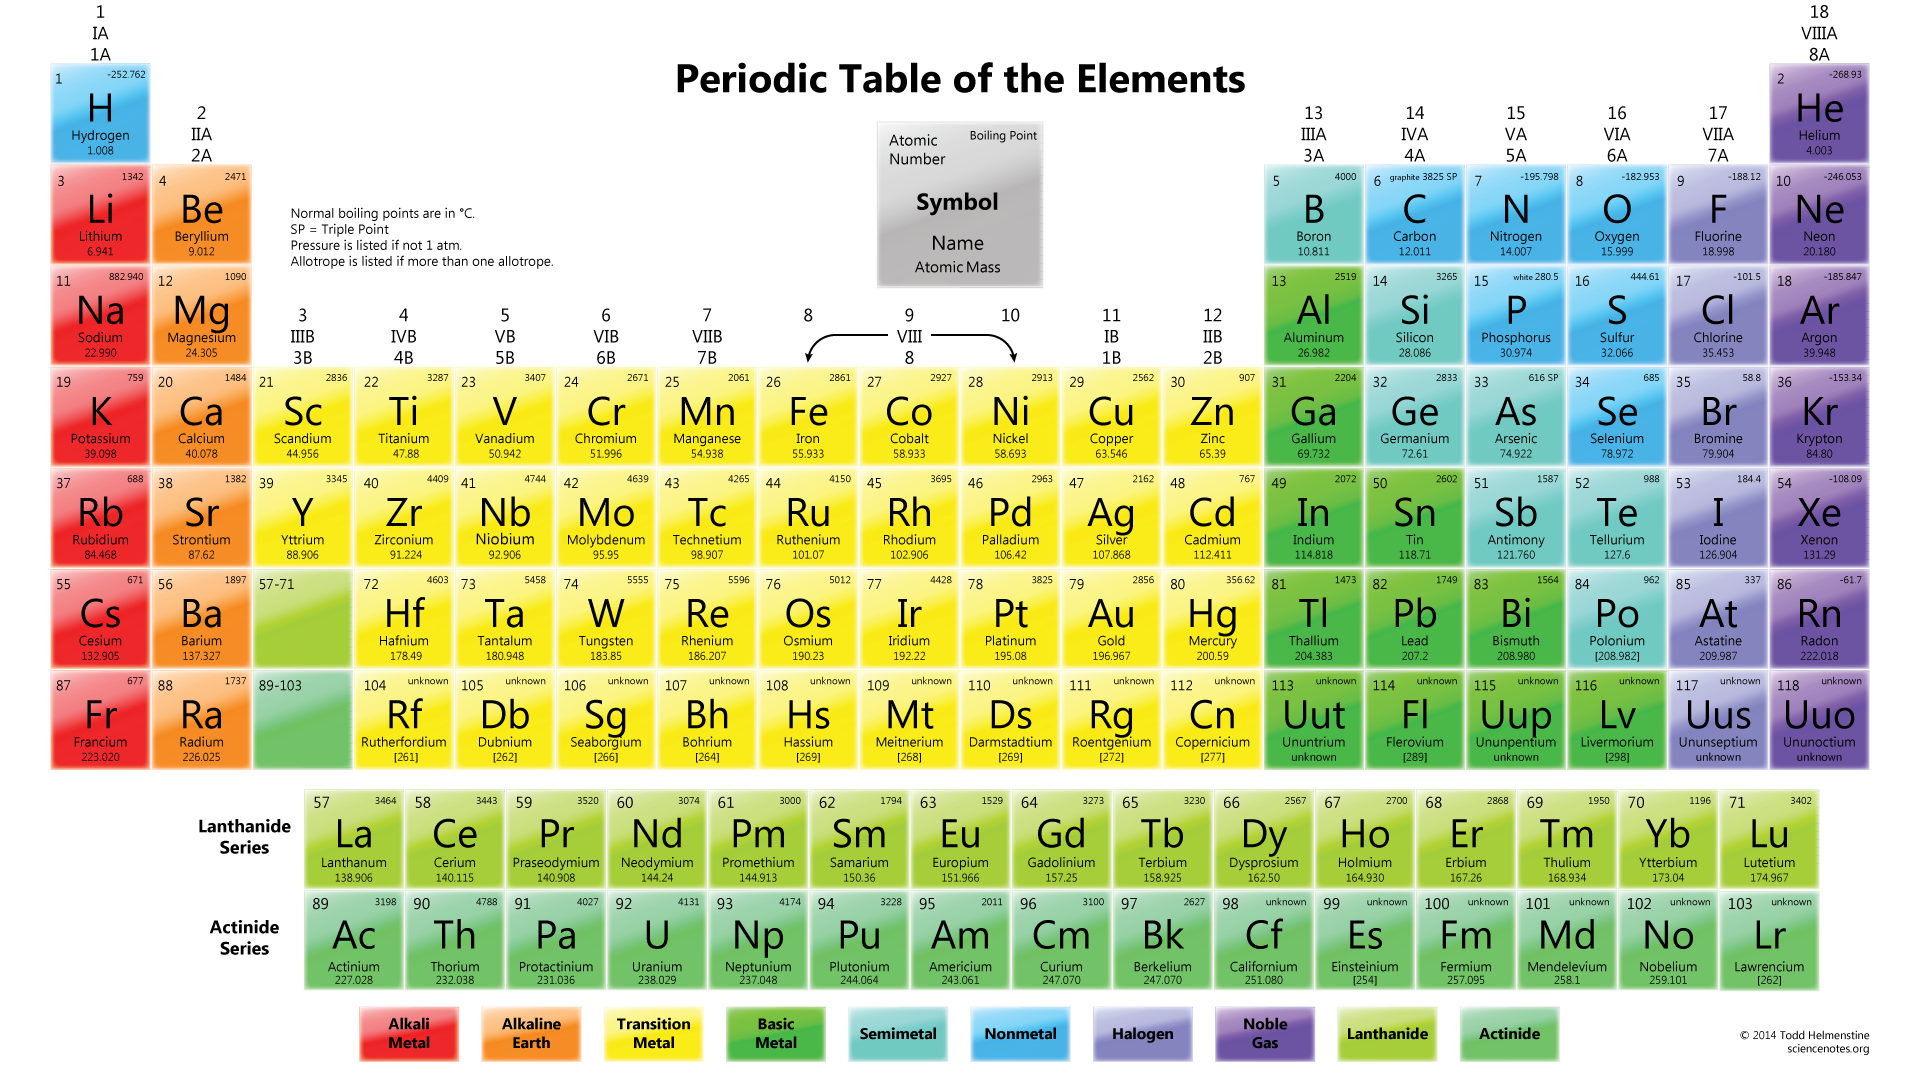 Printable periodic tables for chemistry science notes and projects color periodic table of the elements with boiling points urtaz Gallery